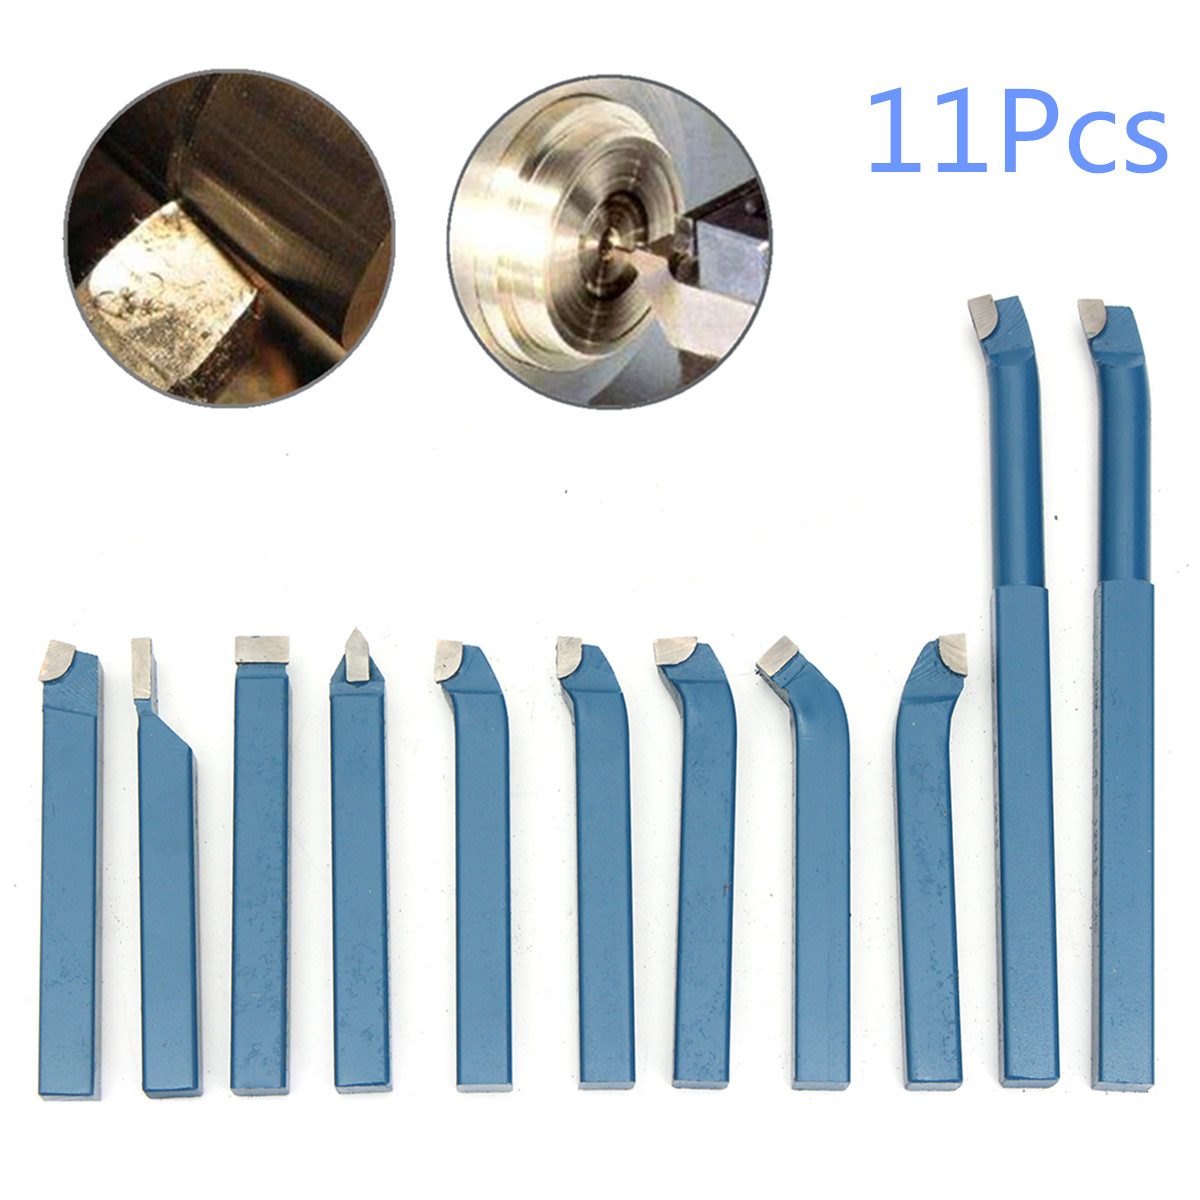 11 x 12mm(1/2) Mini Metal Lathe Tool Set Carbide Tip Cutting Turning Boring Bit Carbide + Steel for Ordinary/CNC Metal Lathe solid carbide c12q sclcr09 180mm hot sale sclcr lathe turning holder boring bar insert for semi finishing